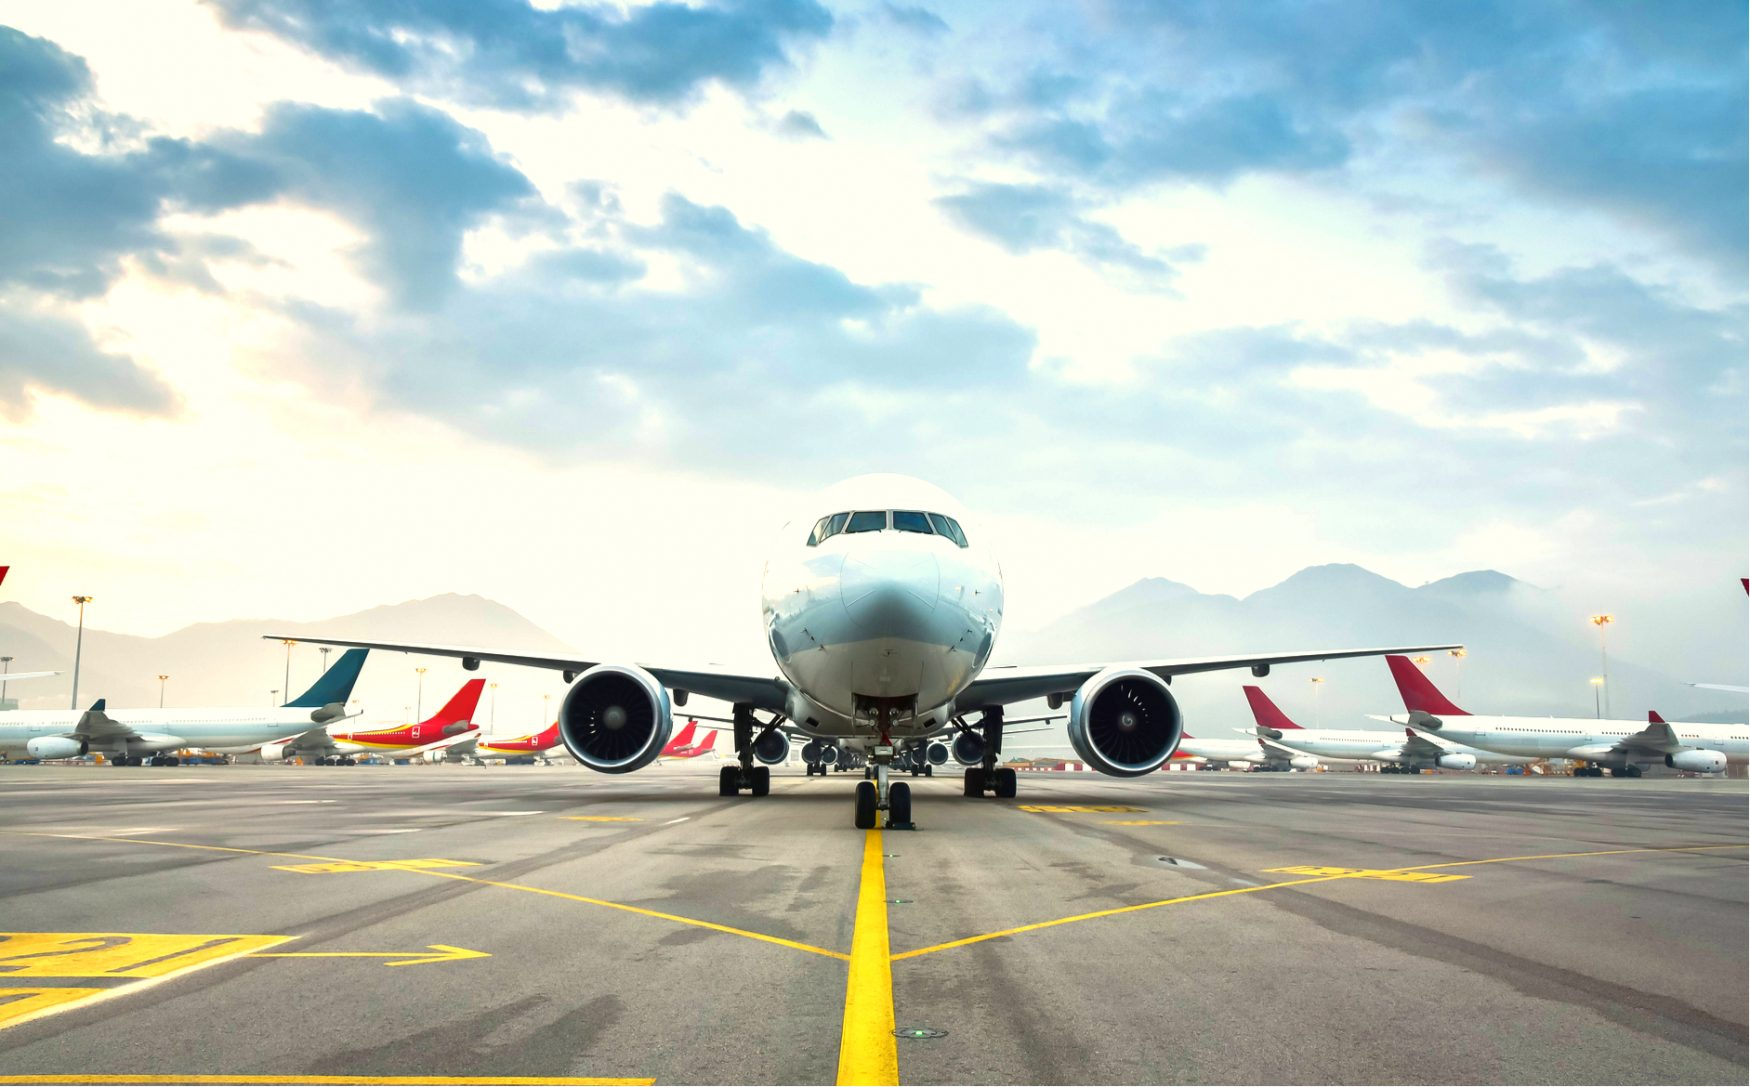 Airplane on runway with fleet